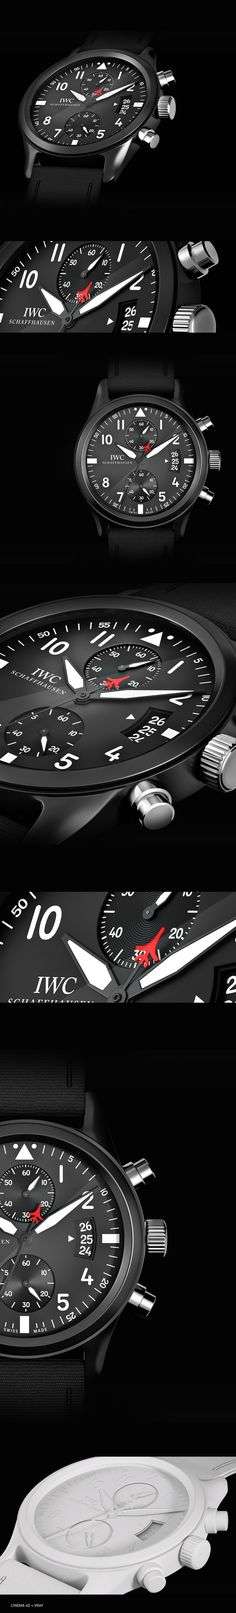 IWC http://www.slideshare.net/leatherjackets/best-watches-reviews-2014-casio-gshock-black-watches-for-men